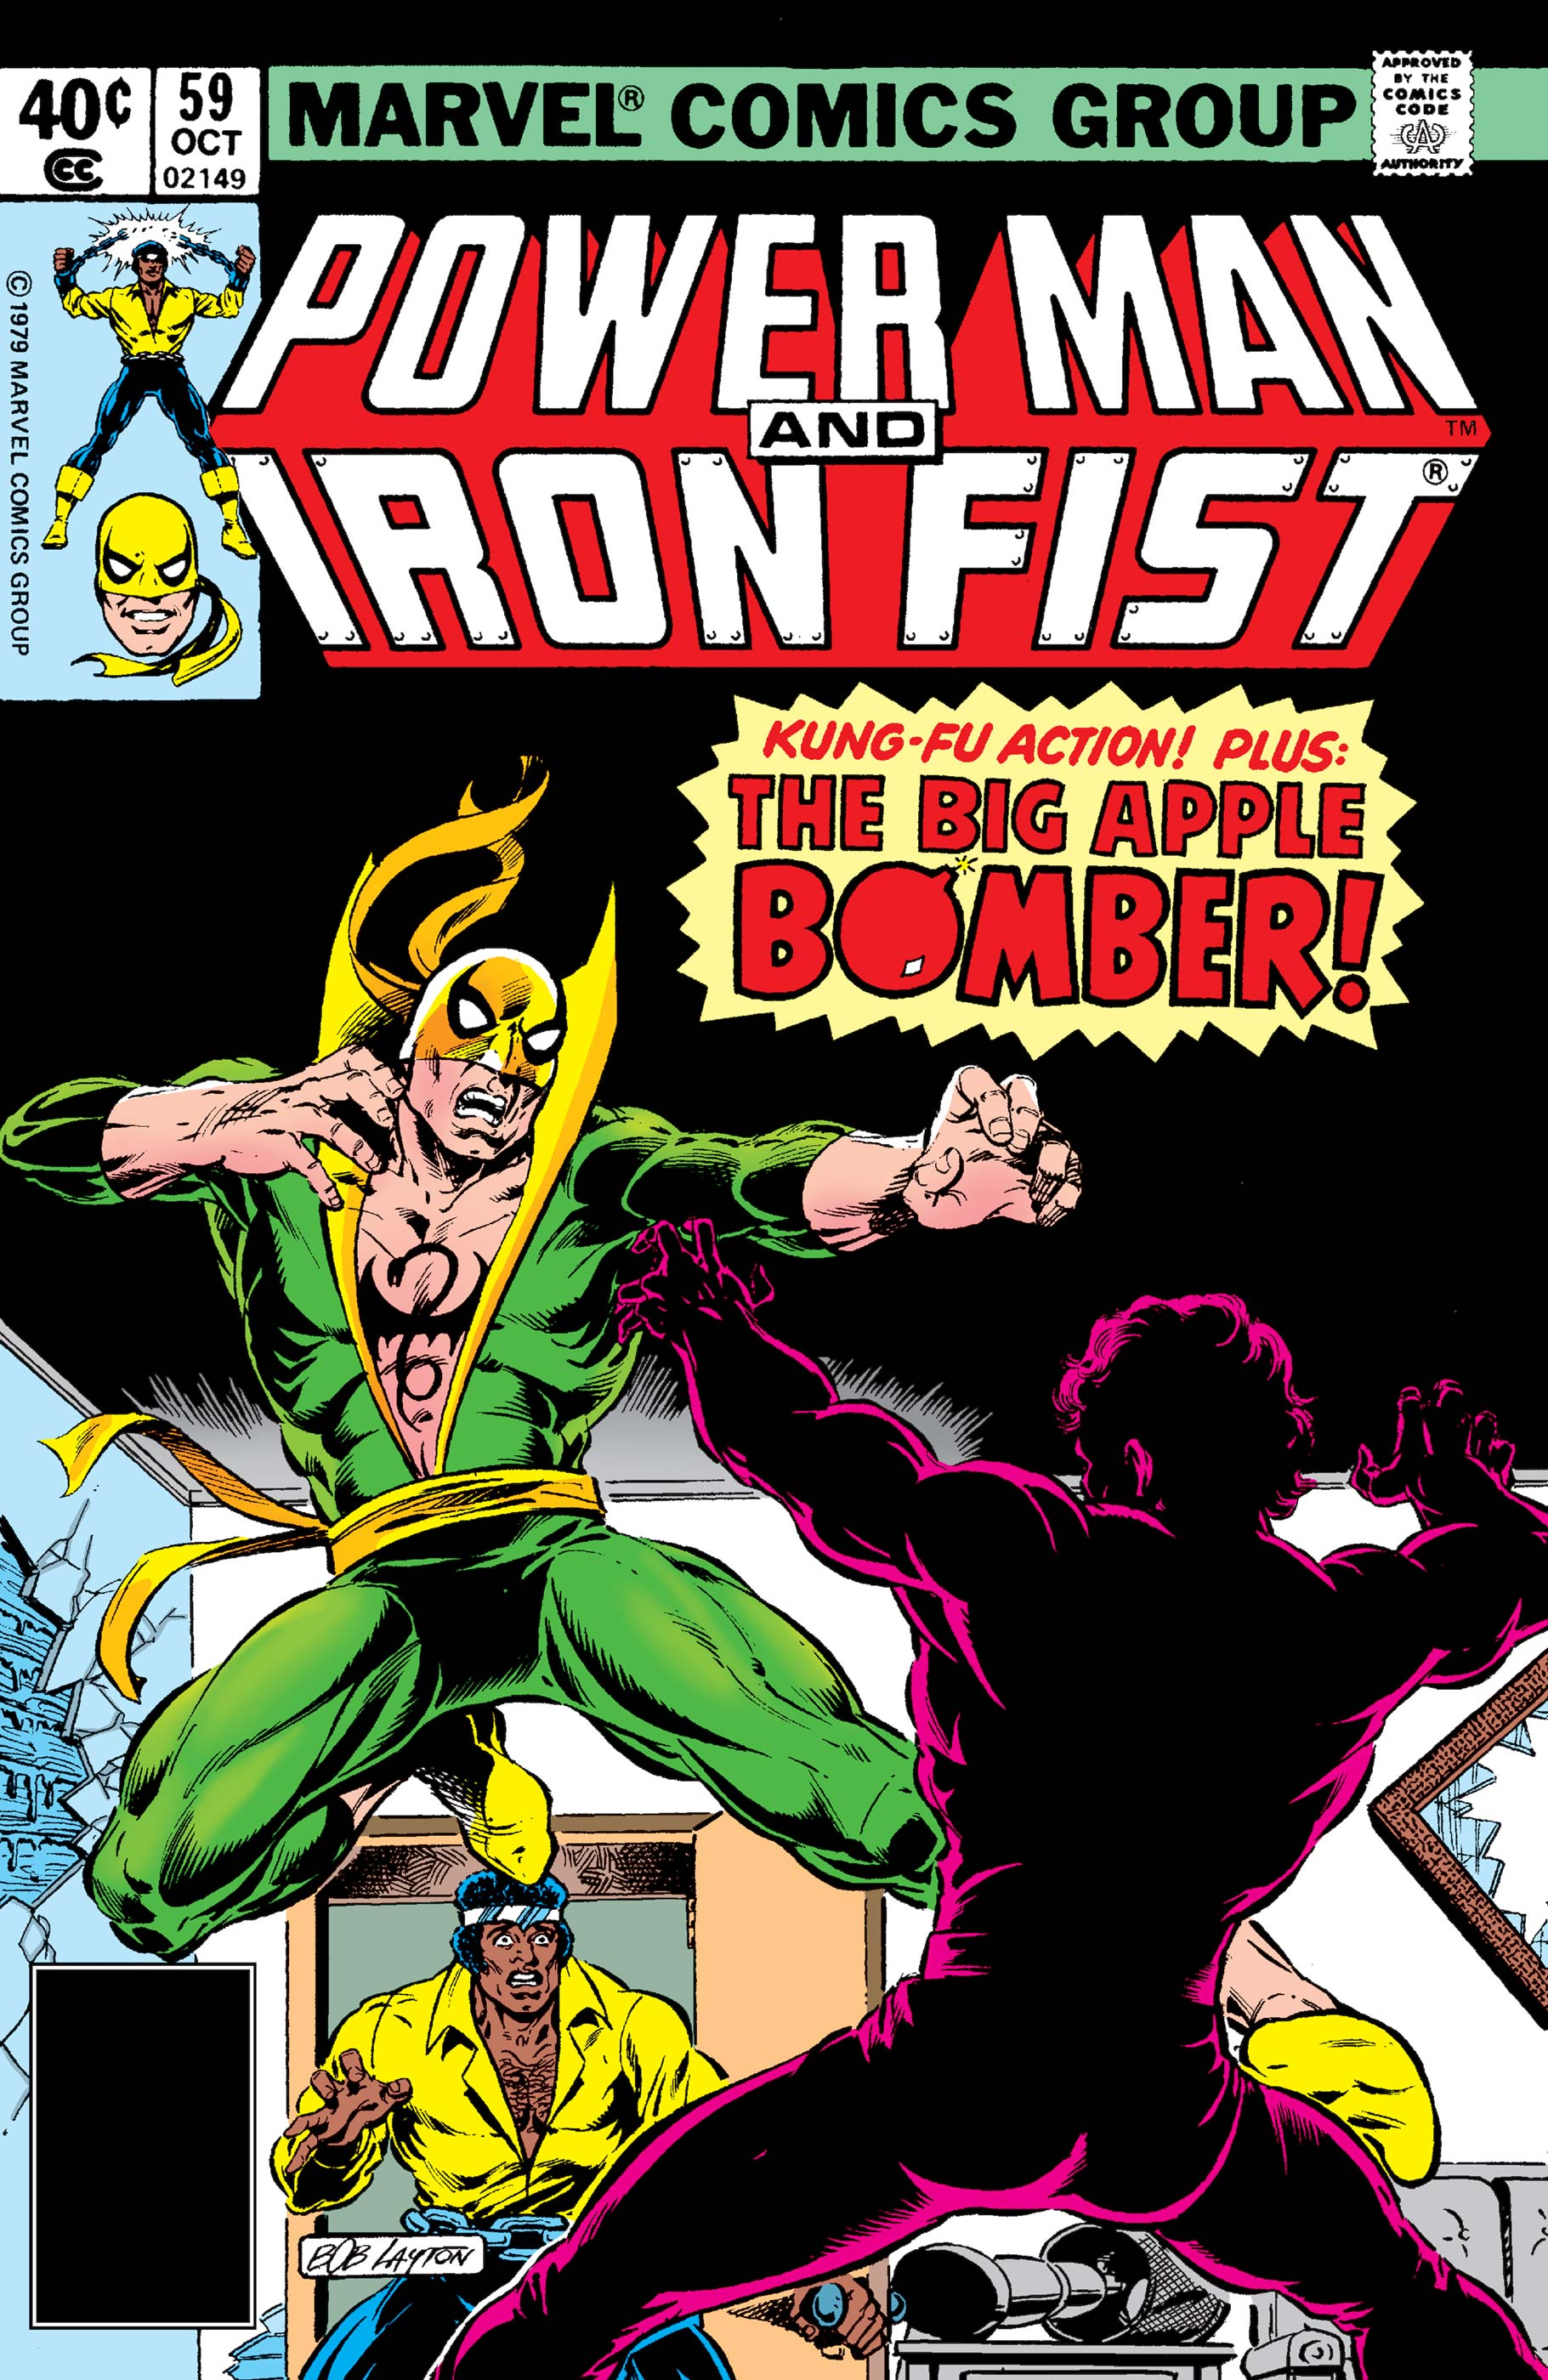 Power Man and Iron Fist (1978) #59